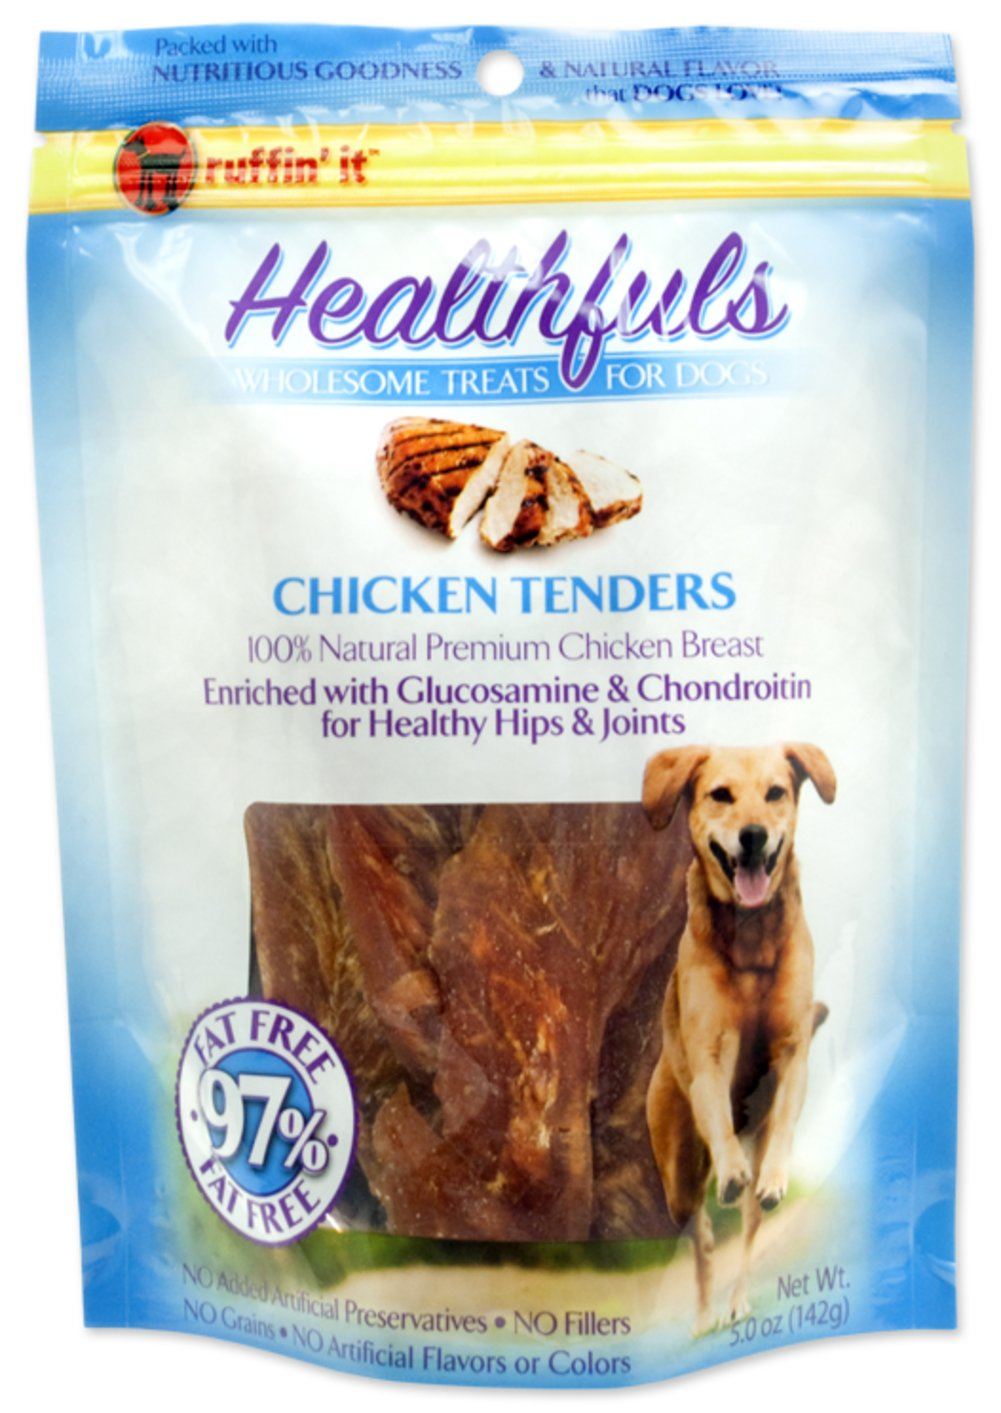 Healthfuls Chicken Tenders with Glucosamine & Chondroitin <p><strong>From the Manufacturer's Label:</strong></p><p>Ruffin' It™ Healthfuls Chicken Tenders are packed with nutritious goodness and a natural sweet flavor that dogs love.  100% natural premium chicken breast enriched with glucosamine & chondroitin.  No artificial preservatives, no fillers, no grains and  no artificial flavors or colors.</p> 5 oz Bag